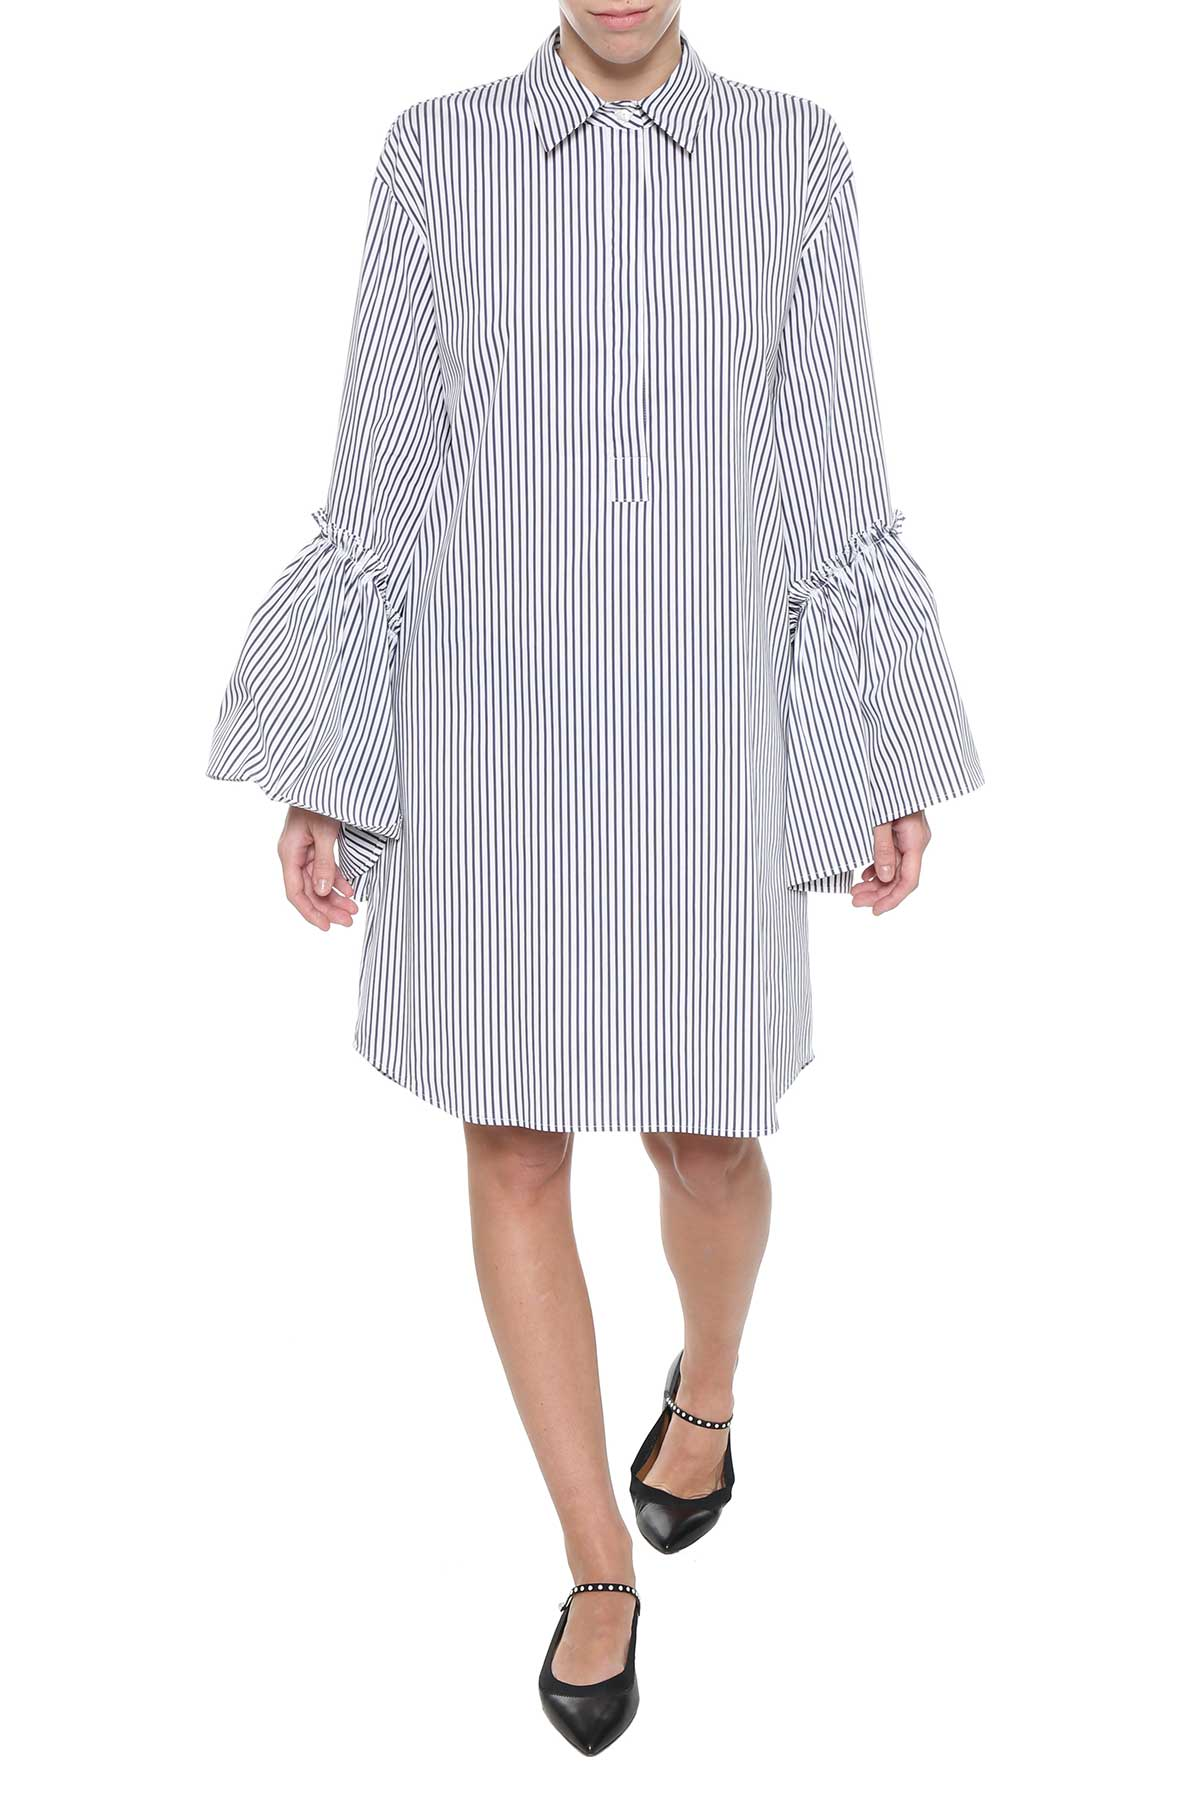 Parosh Parosh Striped Dress